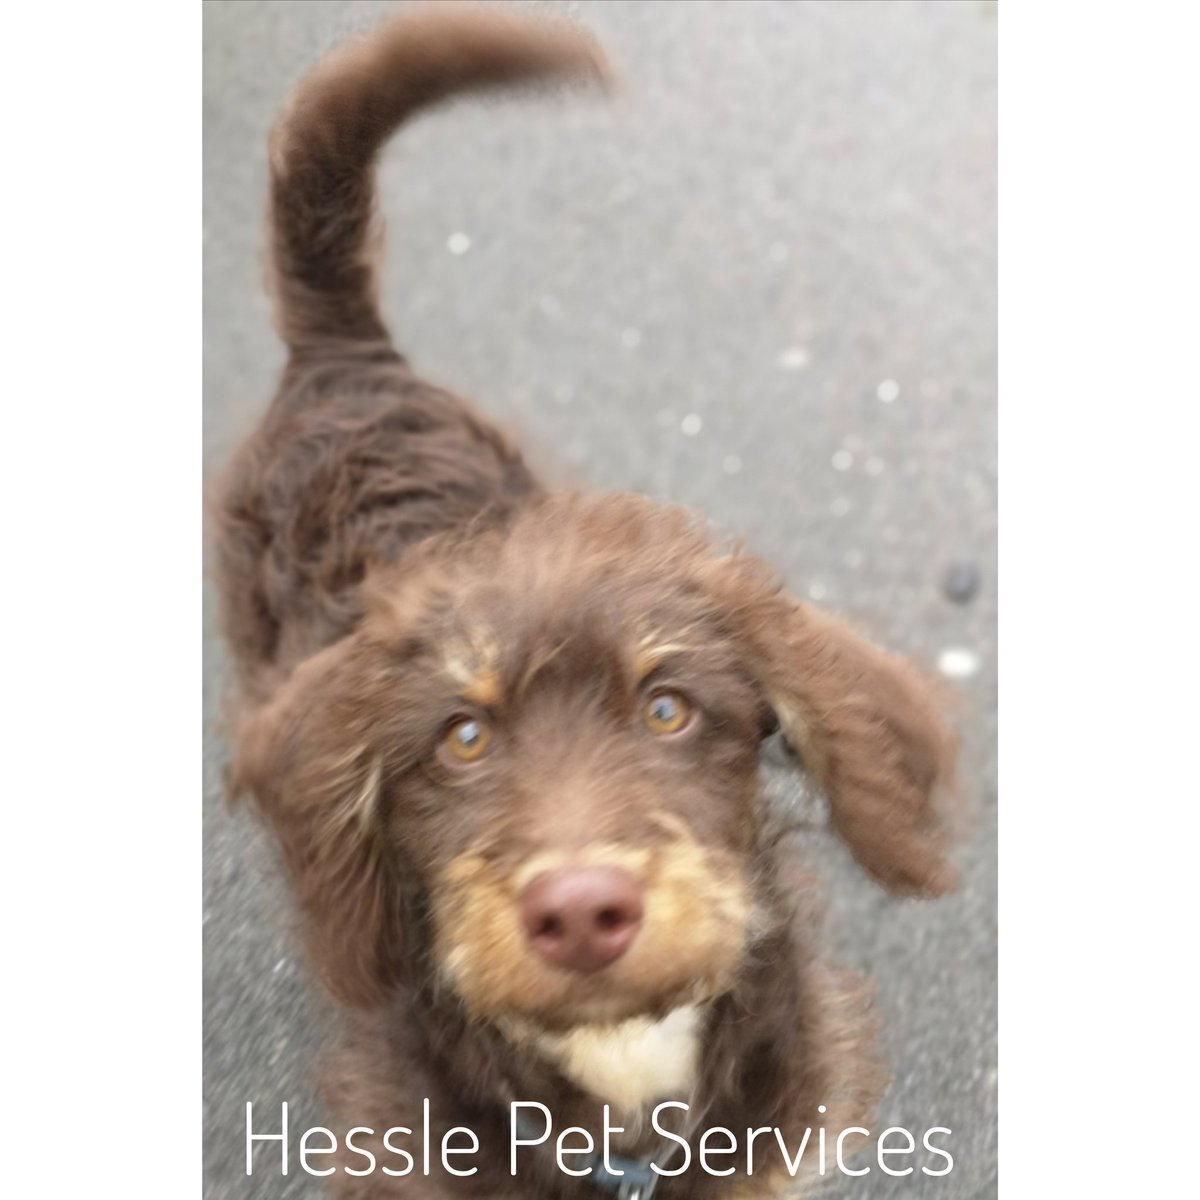 He enjoyed a short bouncy walk with lots of distractions... #dogwalker #dogtrainer #Hessle #puppyvisit #puppy #minaturelabradoodle #minaturelabradoodlepuppy #doodle #doodlepuppy #dogsoftwitter